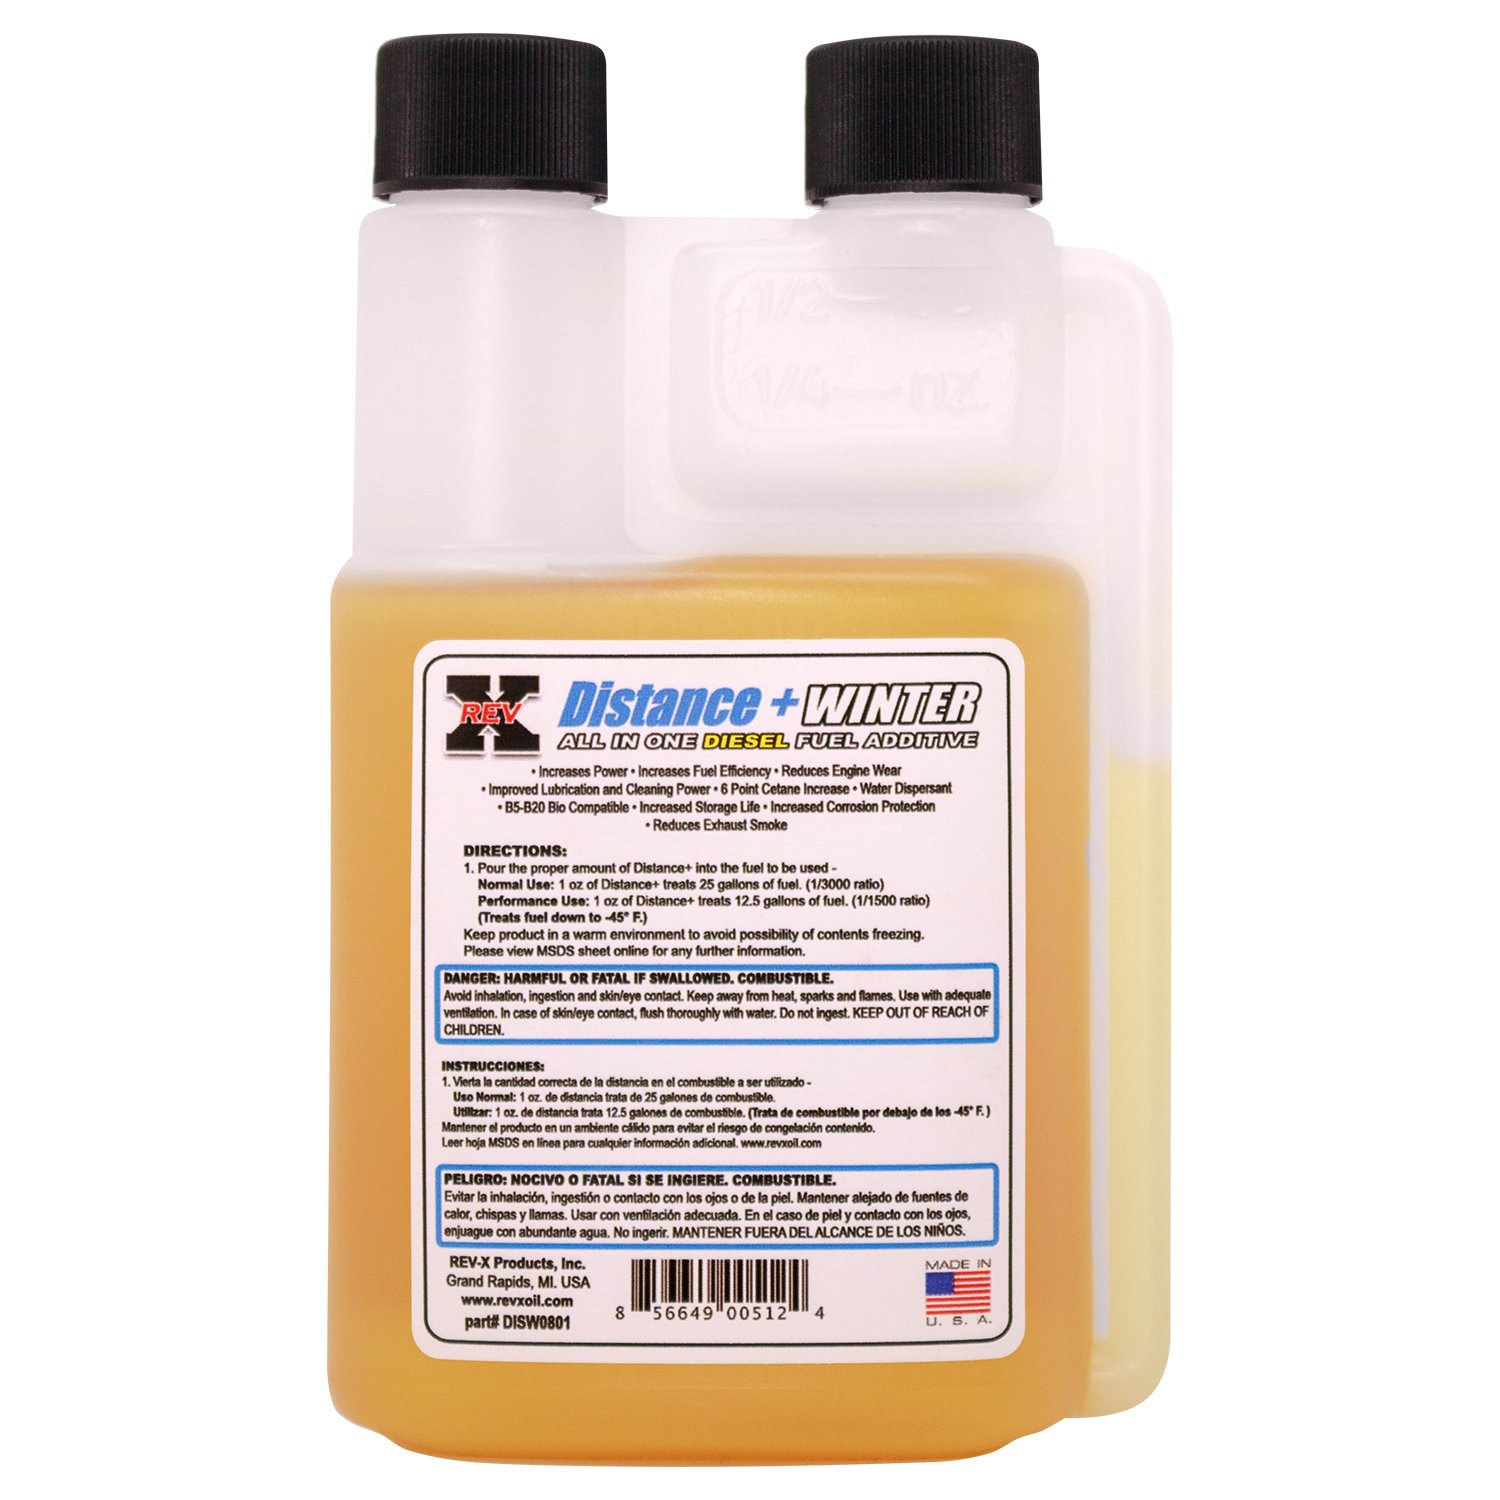 Amazon.com: REV-X Diesel Winter Oil & Fuel Treatment Kit - 4 oz Oil Treatment (2) + 8 oz Distance+ Winter: Automotive